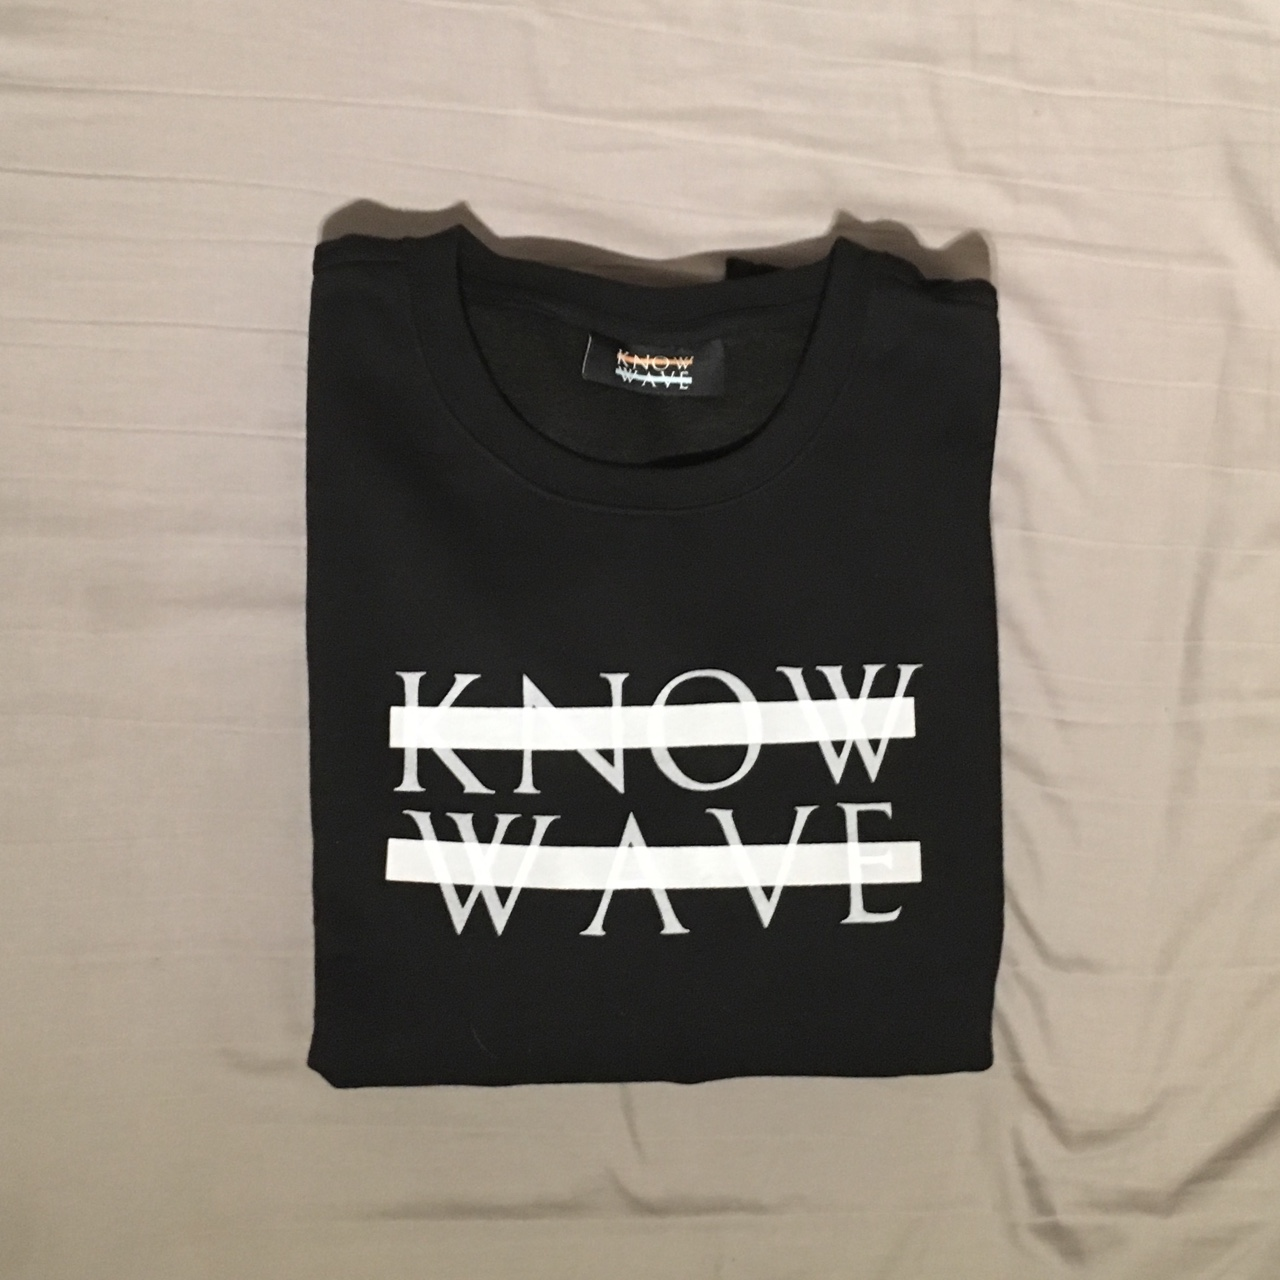 Know Wave Logo Crewneck Sweatshirt Black Large